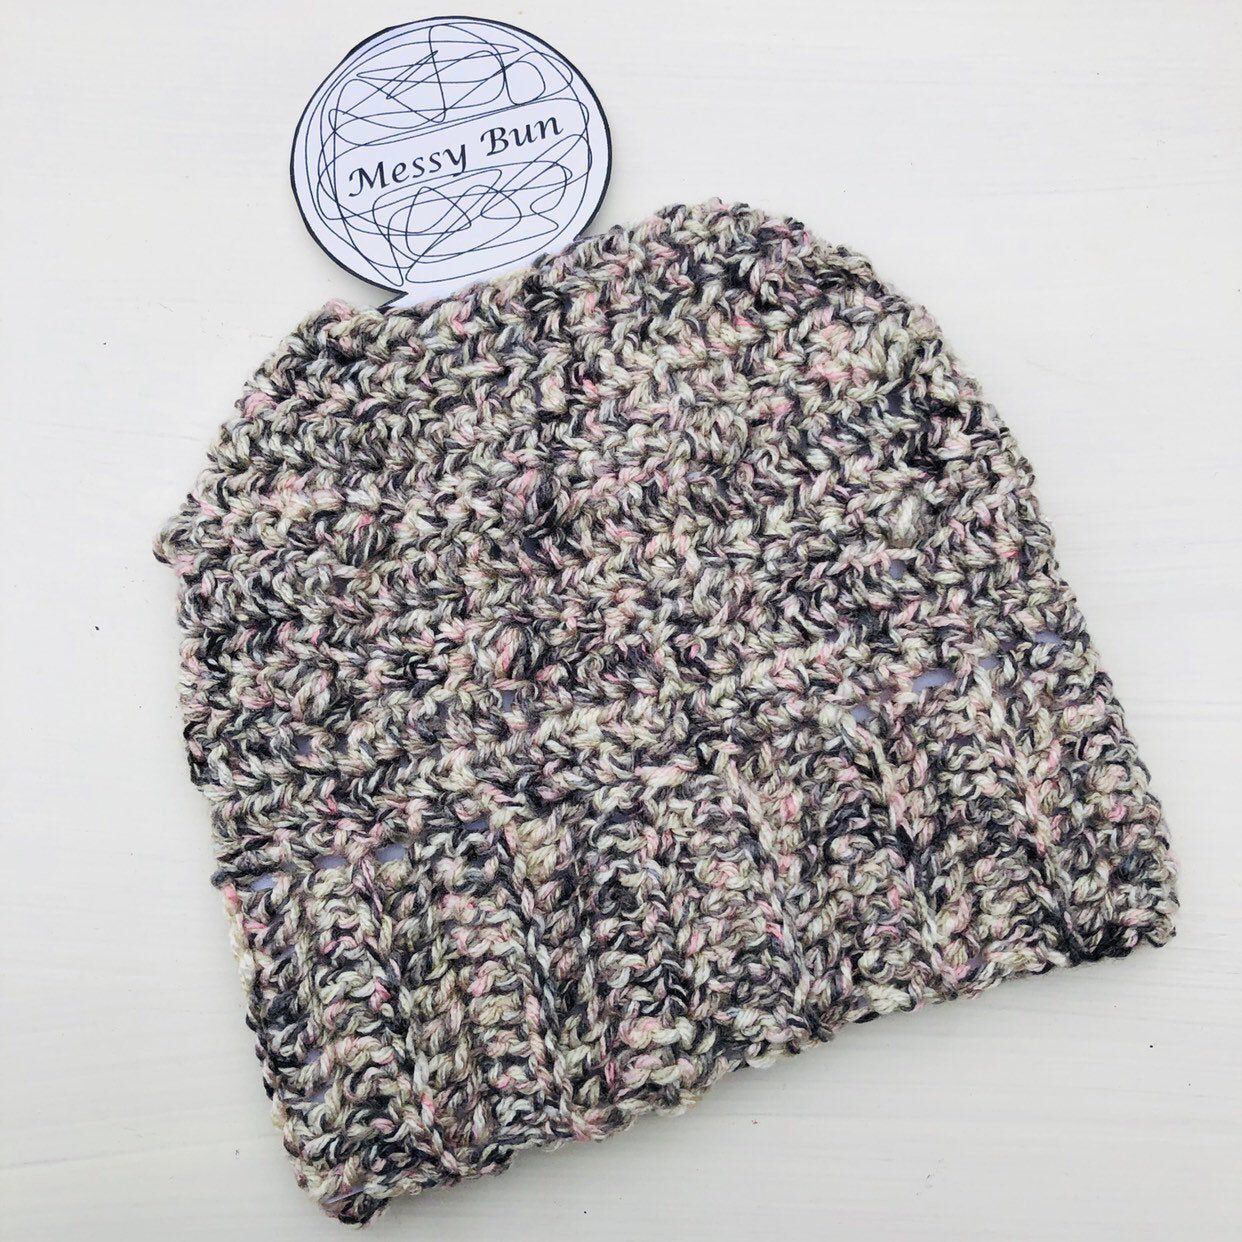 Messy Bun Beanie - Child Size - Grey, Taupe and Pink - Messy Bun - Machine Wash and Dry - Messy Hair - Kids Beanie #kidsmessyhats